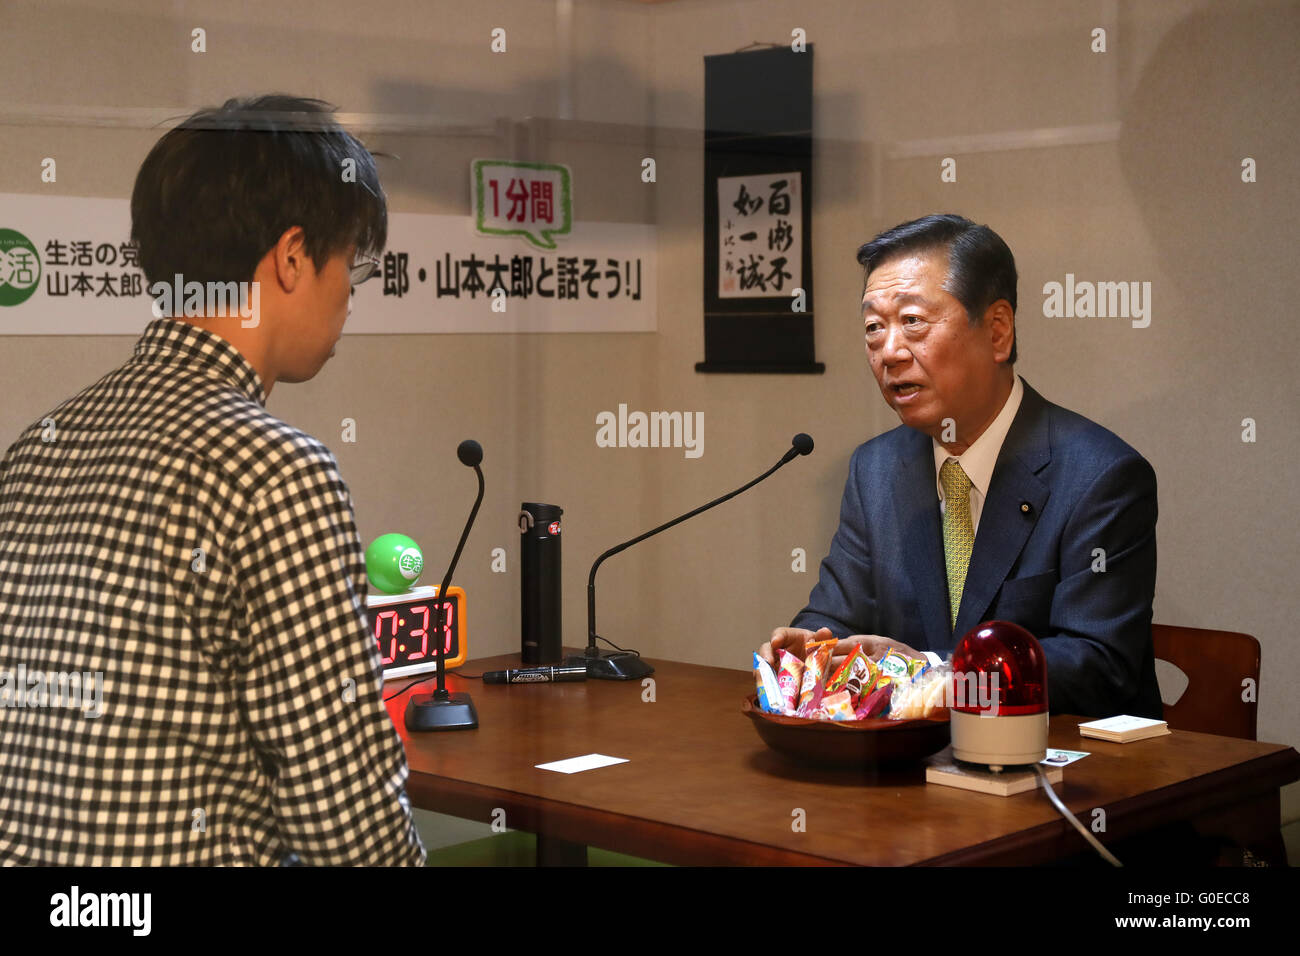 """Chiba, Japan. 30th Apr, 2016. Japan's opposition People's Life Party leader Ichiro Ozawa has dialogue with a visitor during the Niconico Chokaigi in Chiba on Saturday, April 30, 2016. Some 150,000 visitors enjoyed over 100 booths including games, hobbies, sports, politics as well as Japan's sub cultures at the two-day offline meeting sponsored by Japan's video sharing website """"Niconico Douga"""". © Yoshio Tsunoda/AFLO/Alamy Live News Stock Photo"""